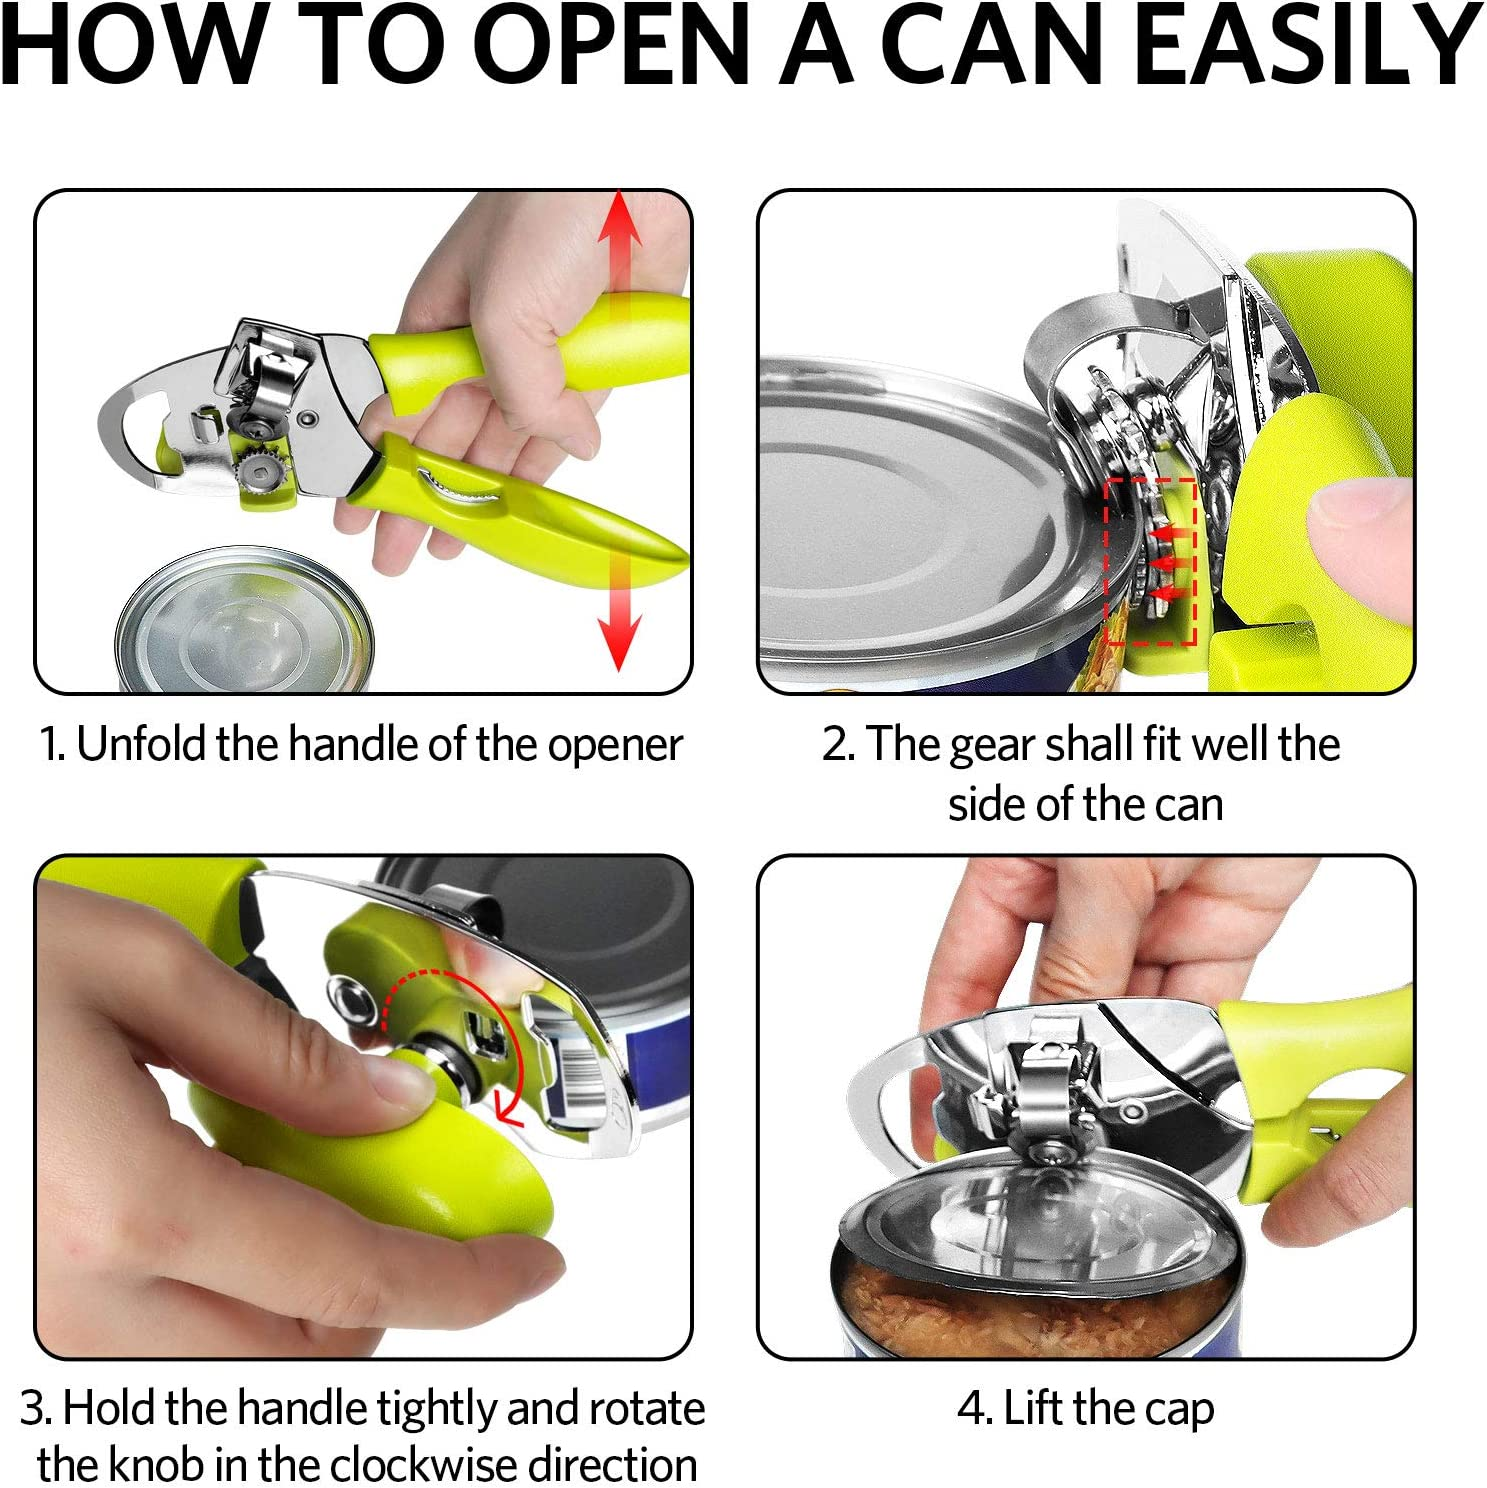 4 in 1 Stainless Steel Tin openers Manual Can Openers Beer and Jar Bottle Openers with Non-Slip Handle and 4 Replaceable Gear-Shaped Blades Green Suitable for Cans